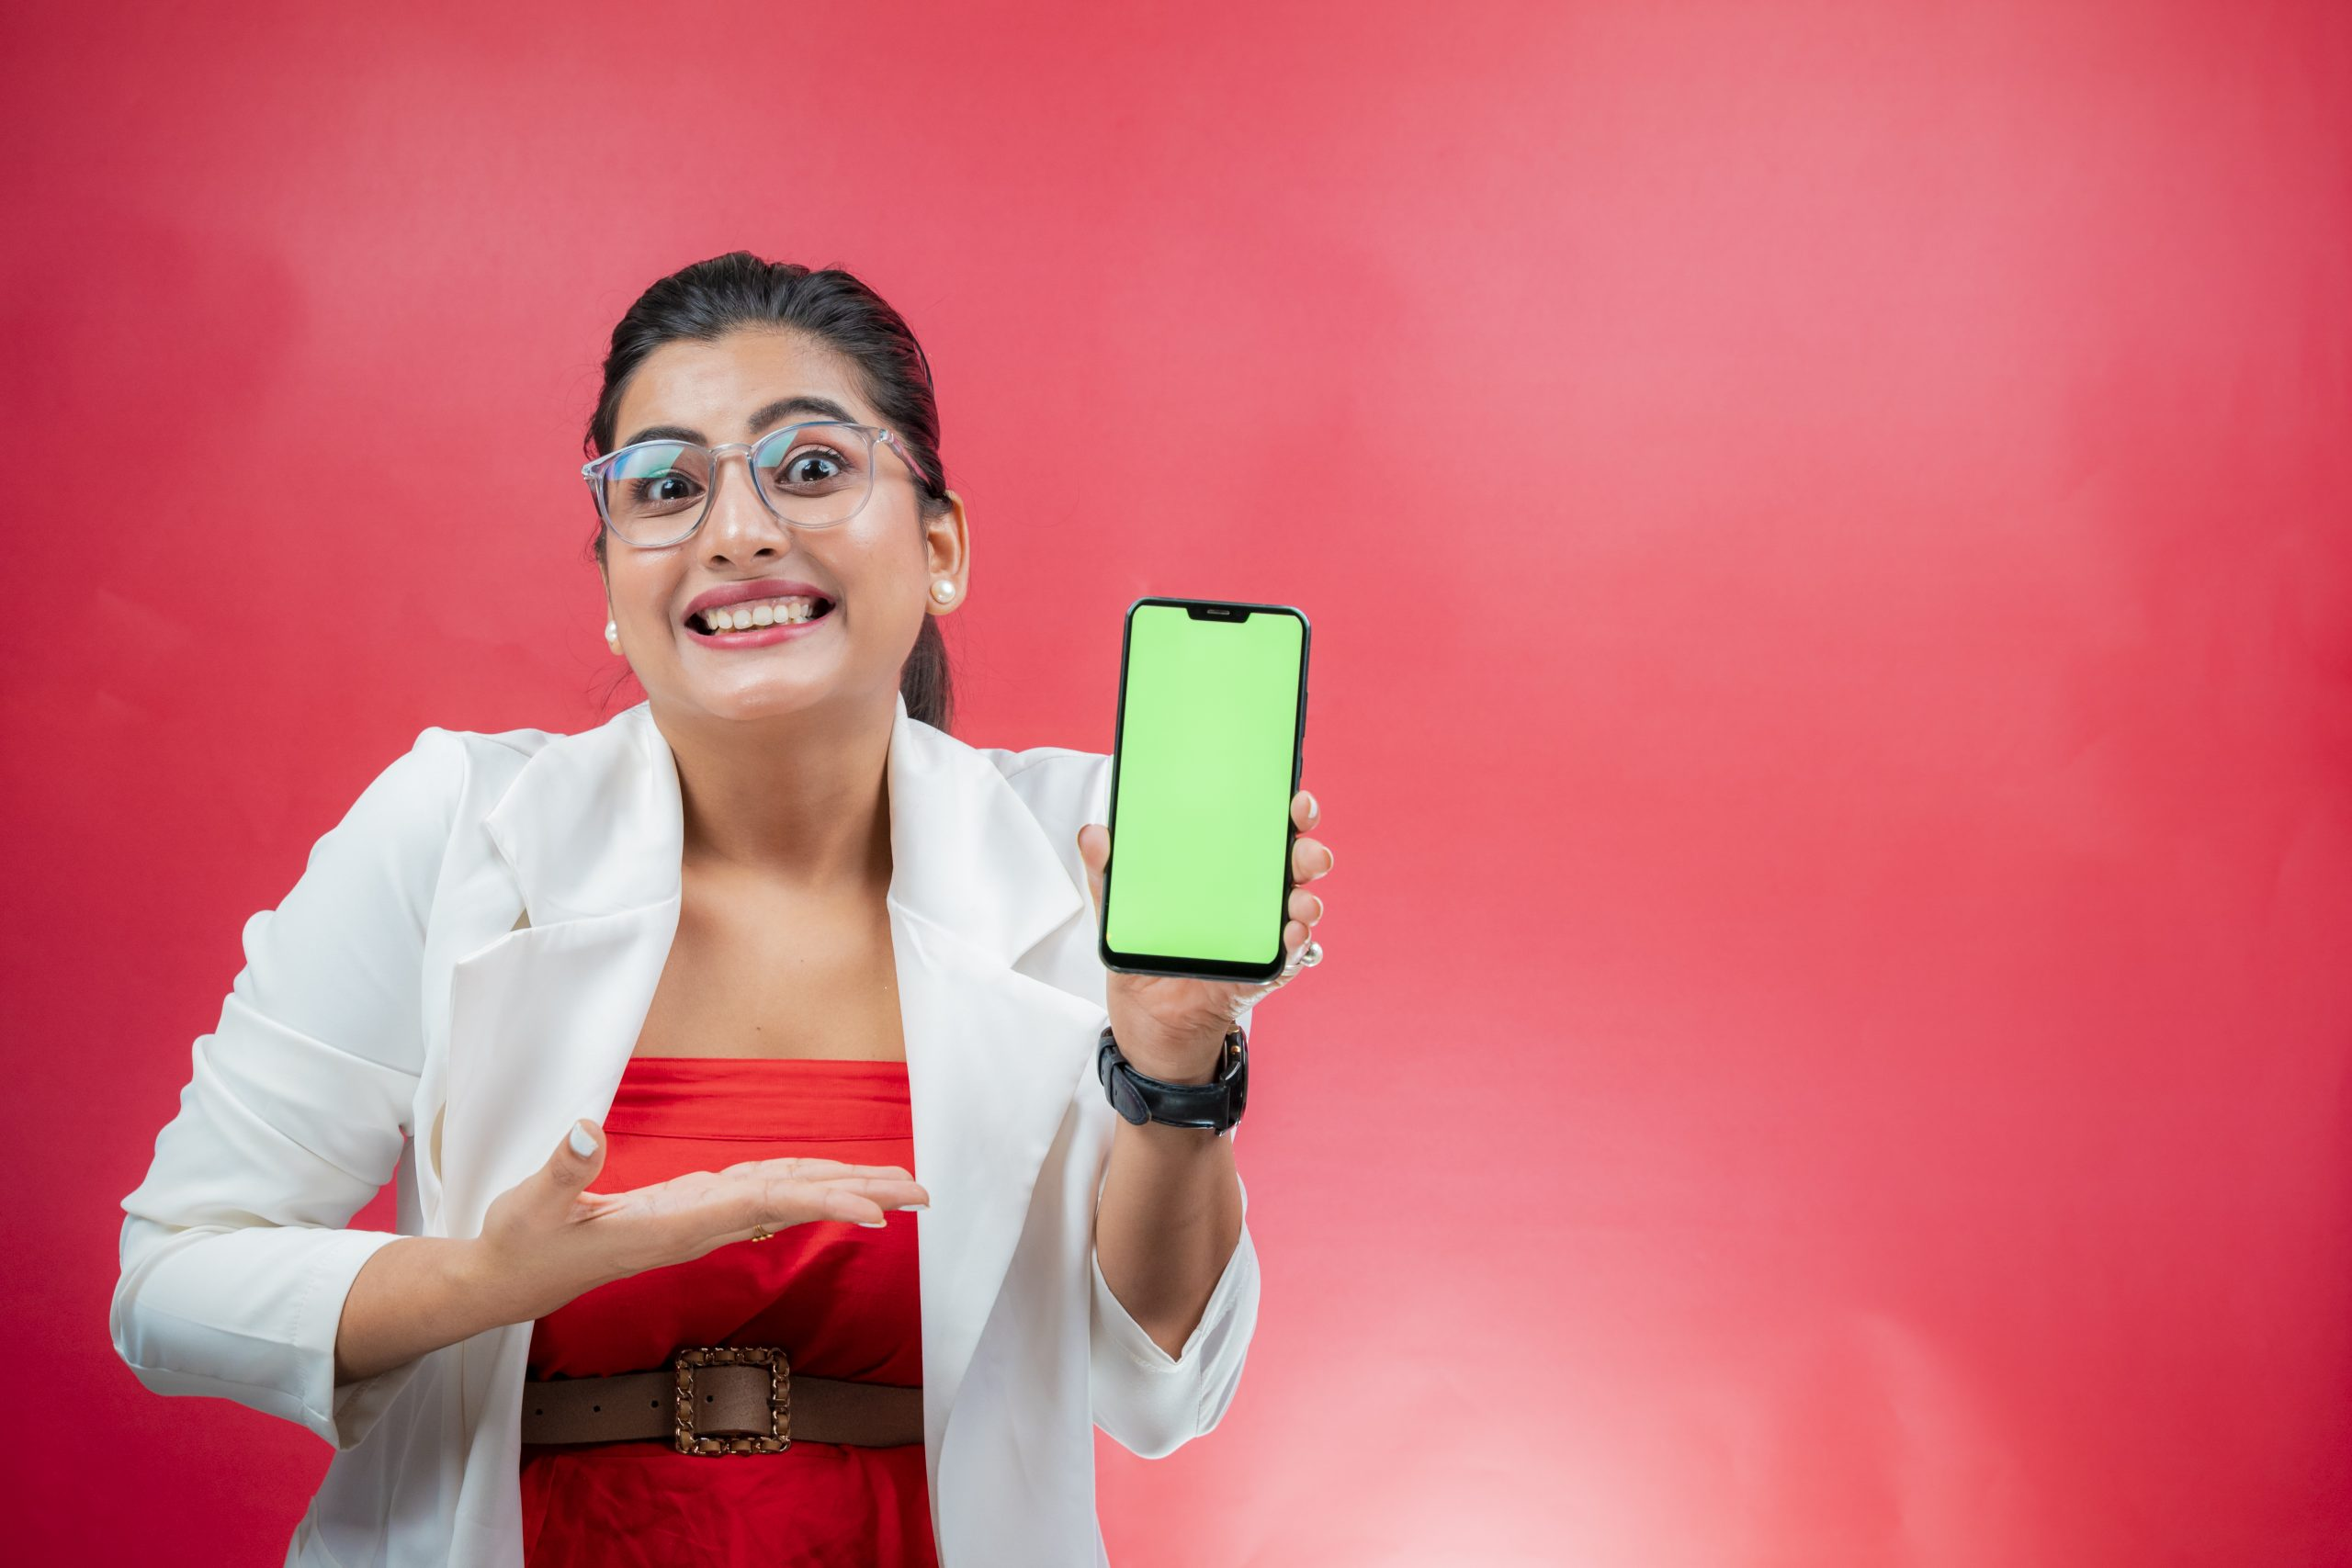 Happy young woman smiling and pointing towards green screen place holder phone